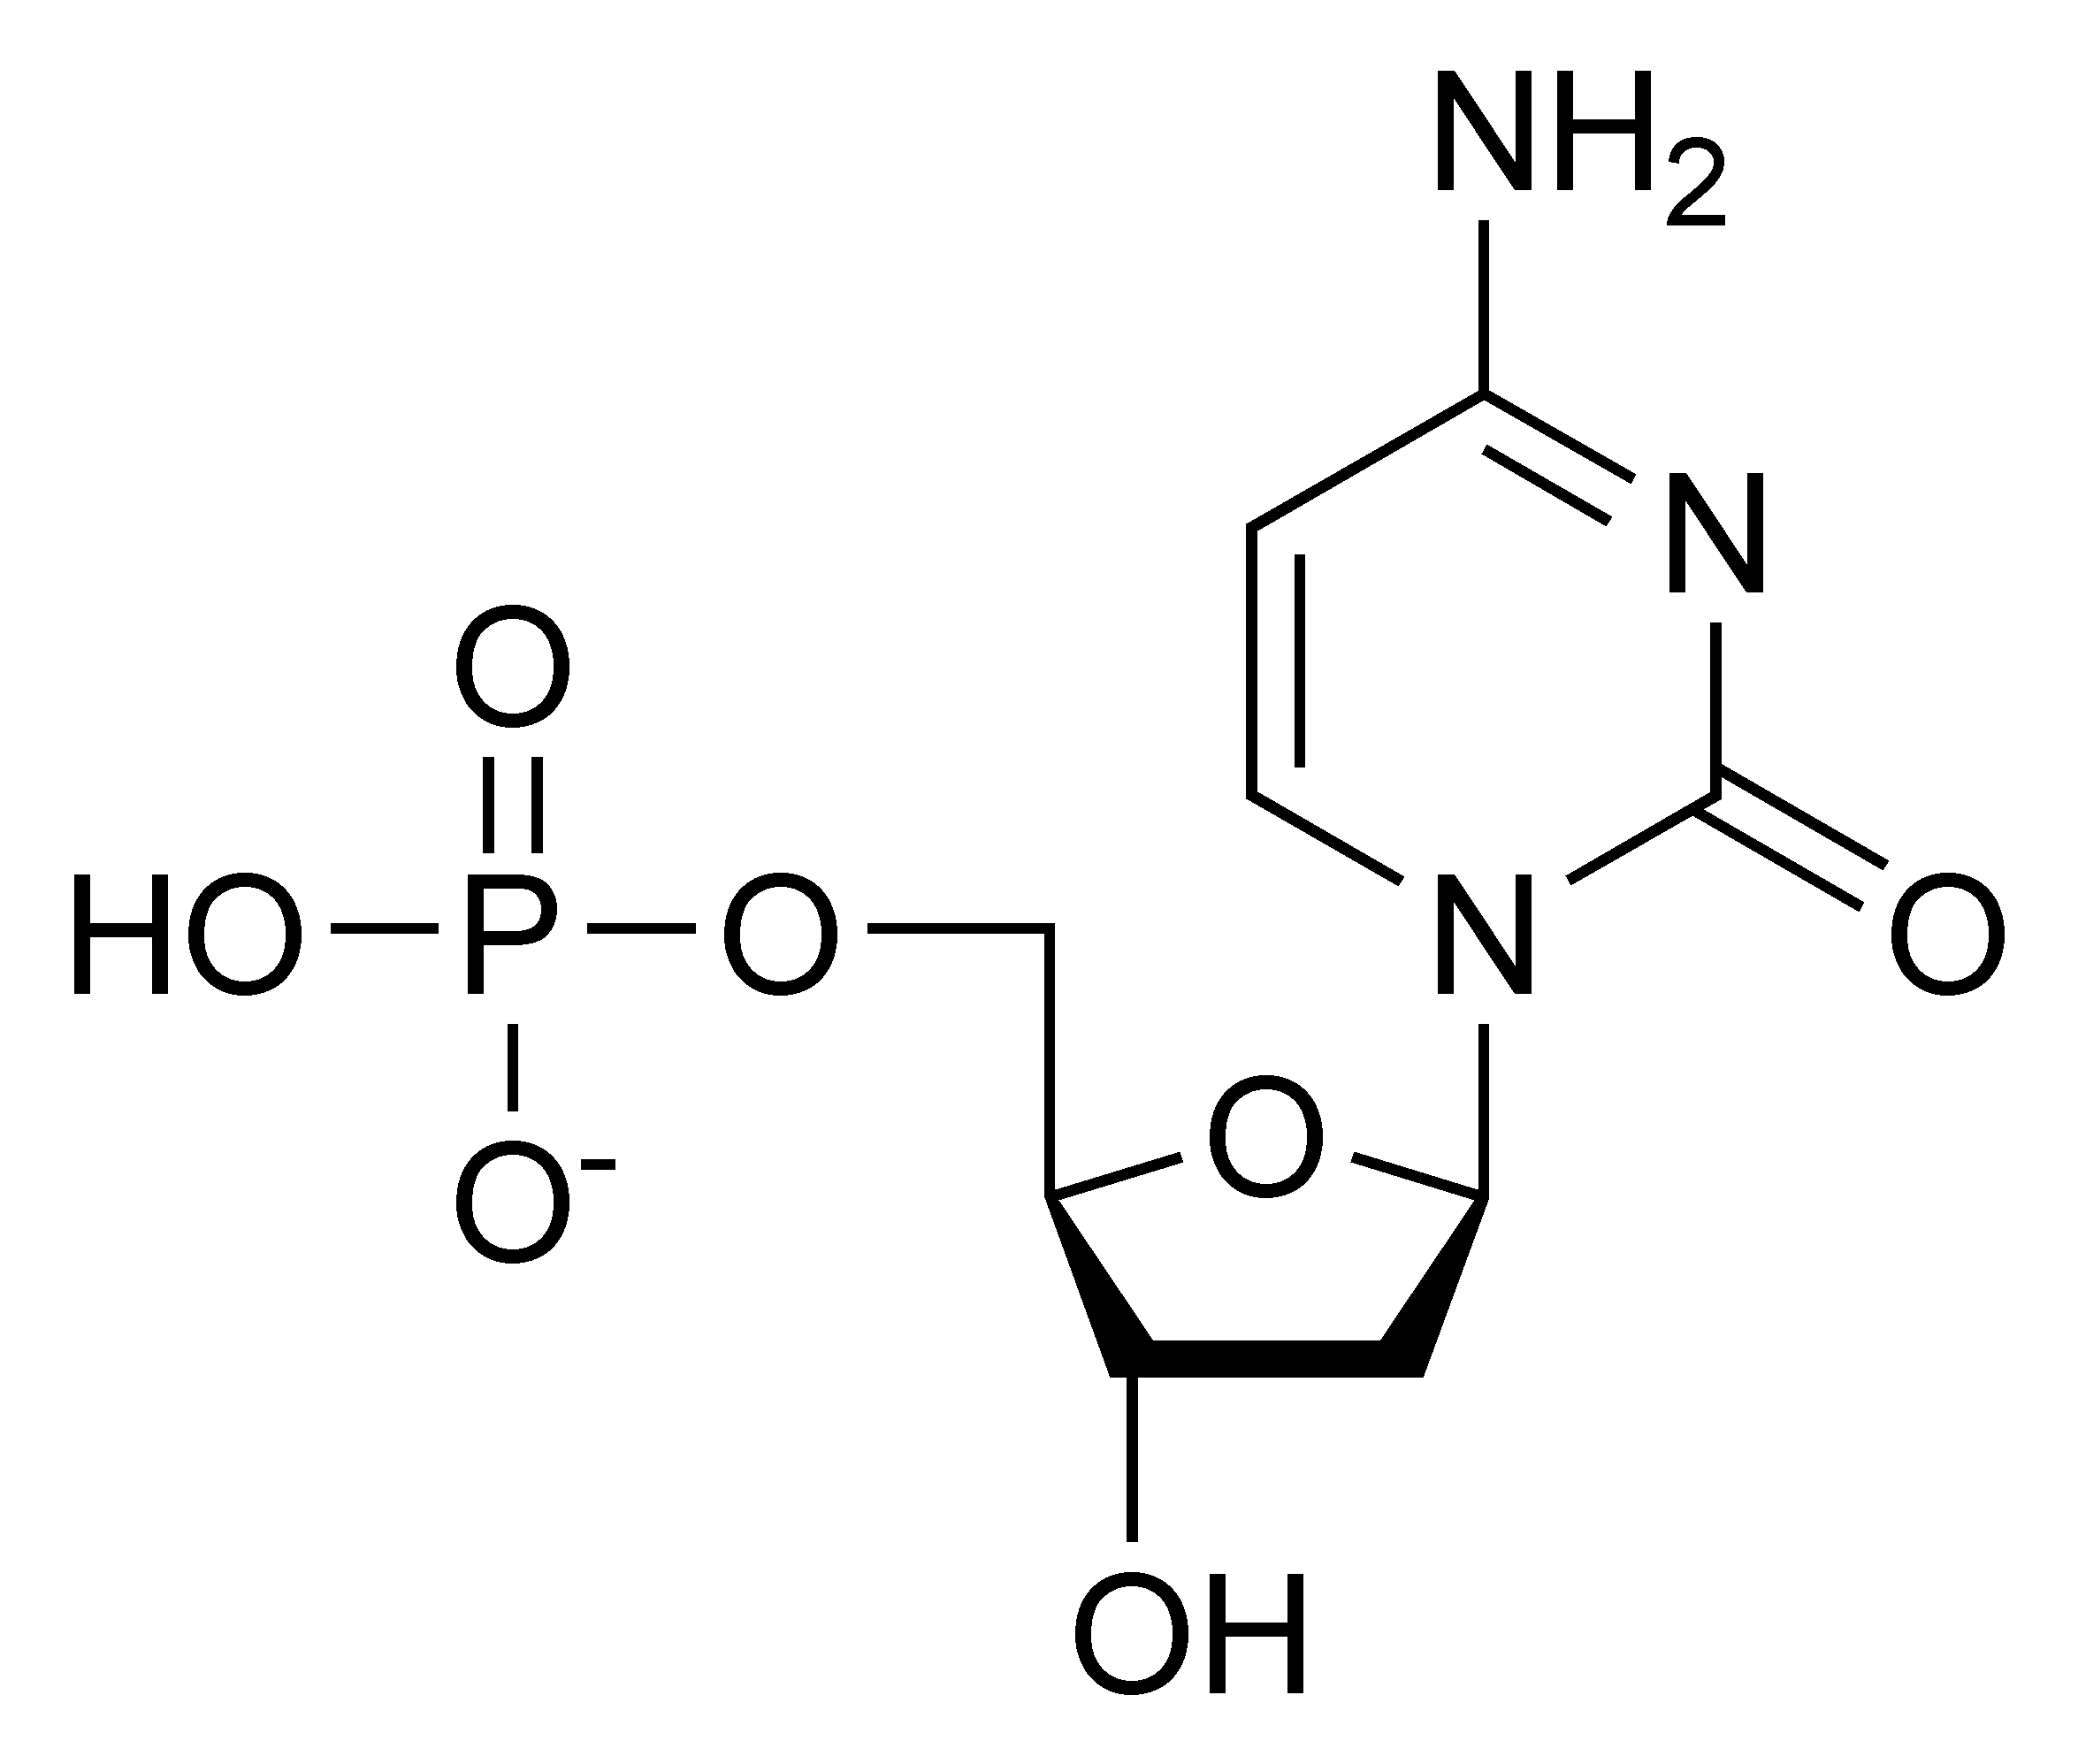 Chemical structure of deoxycytidine monophosphate